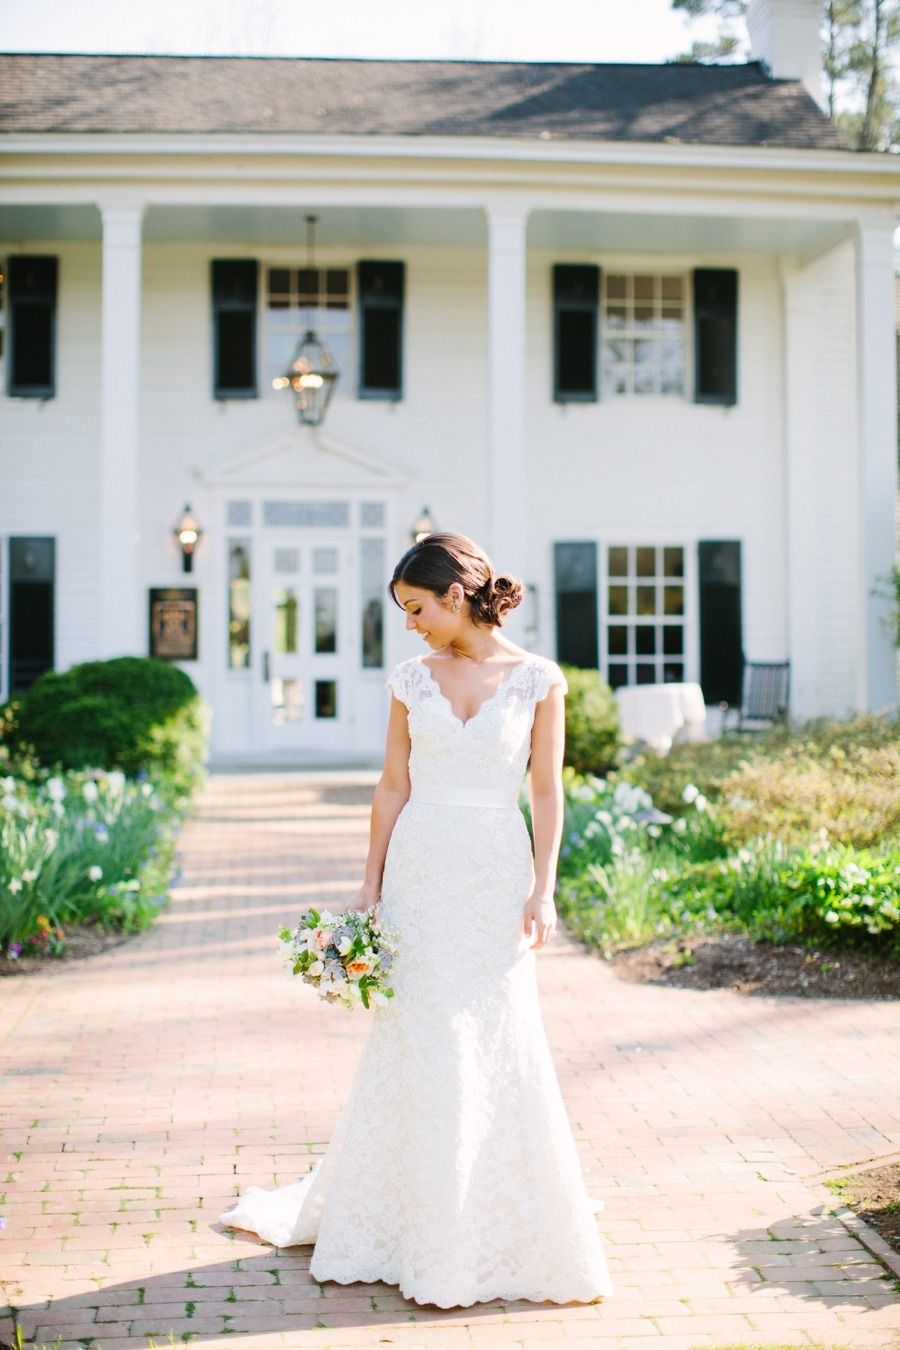 Photography: Anna Routh Photography - annarouthphoto.com  Read More: http://www.stylemepretty.com/2014/07/14/spring-barn-wedding-in-chapel-hill/